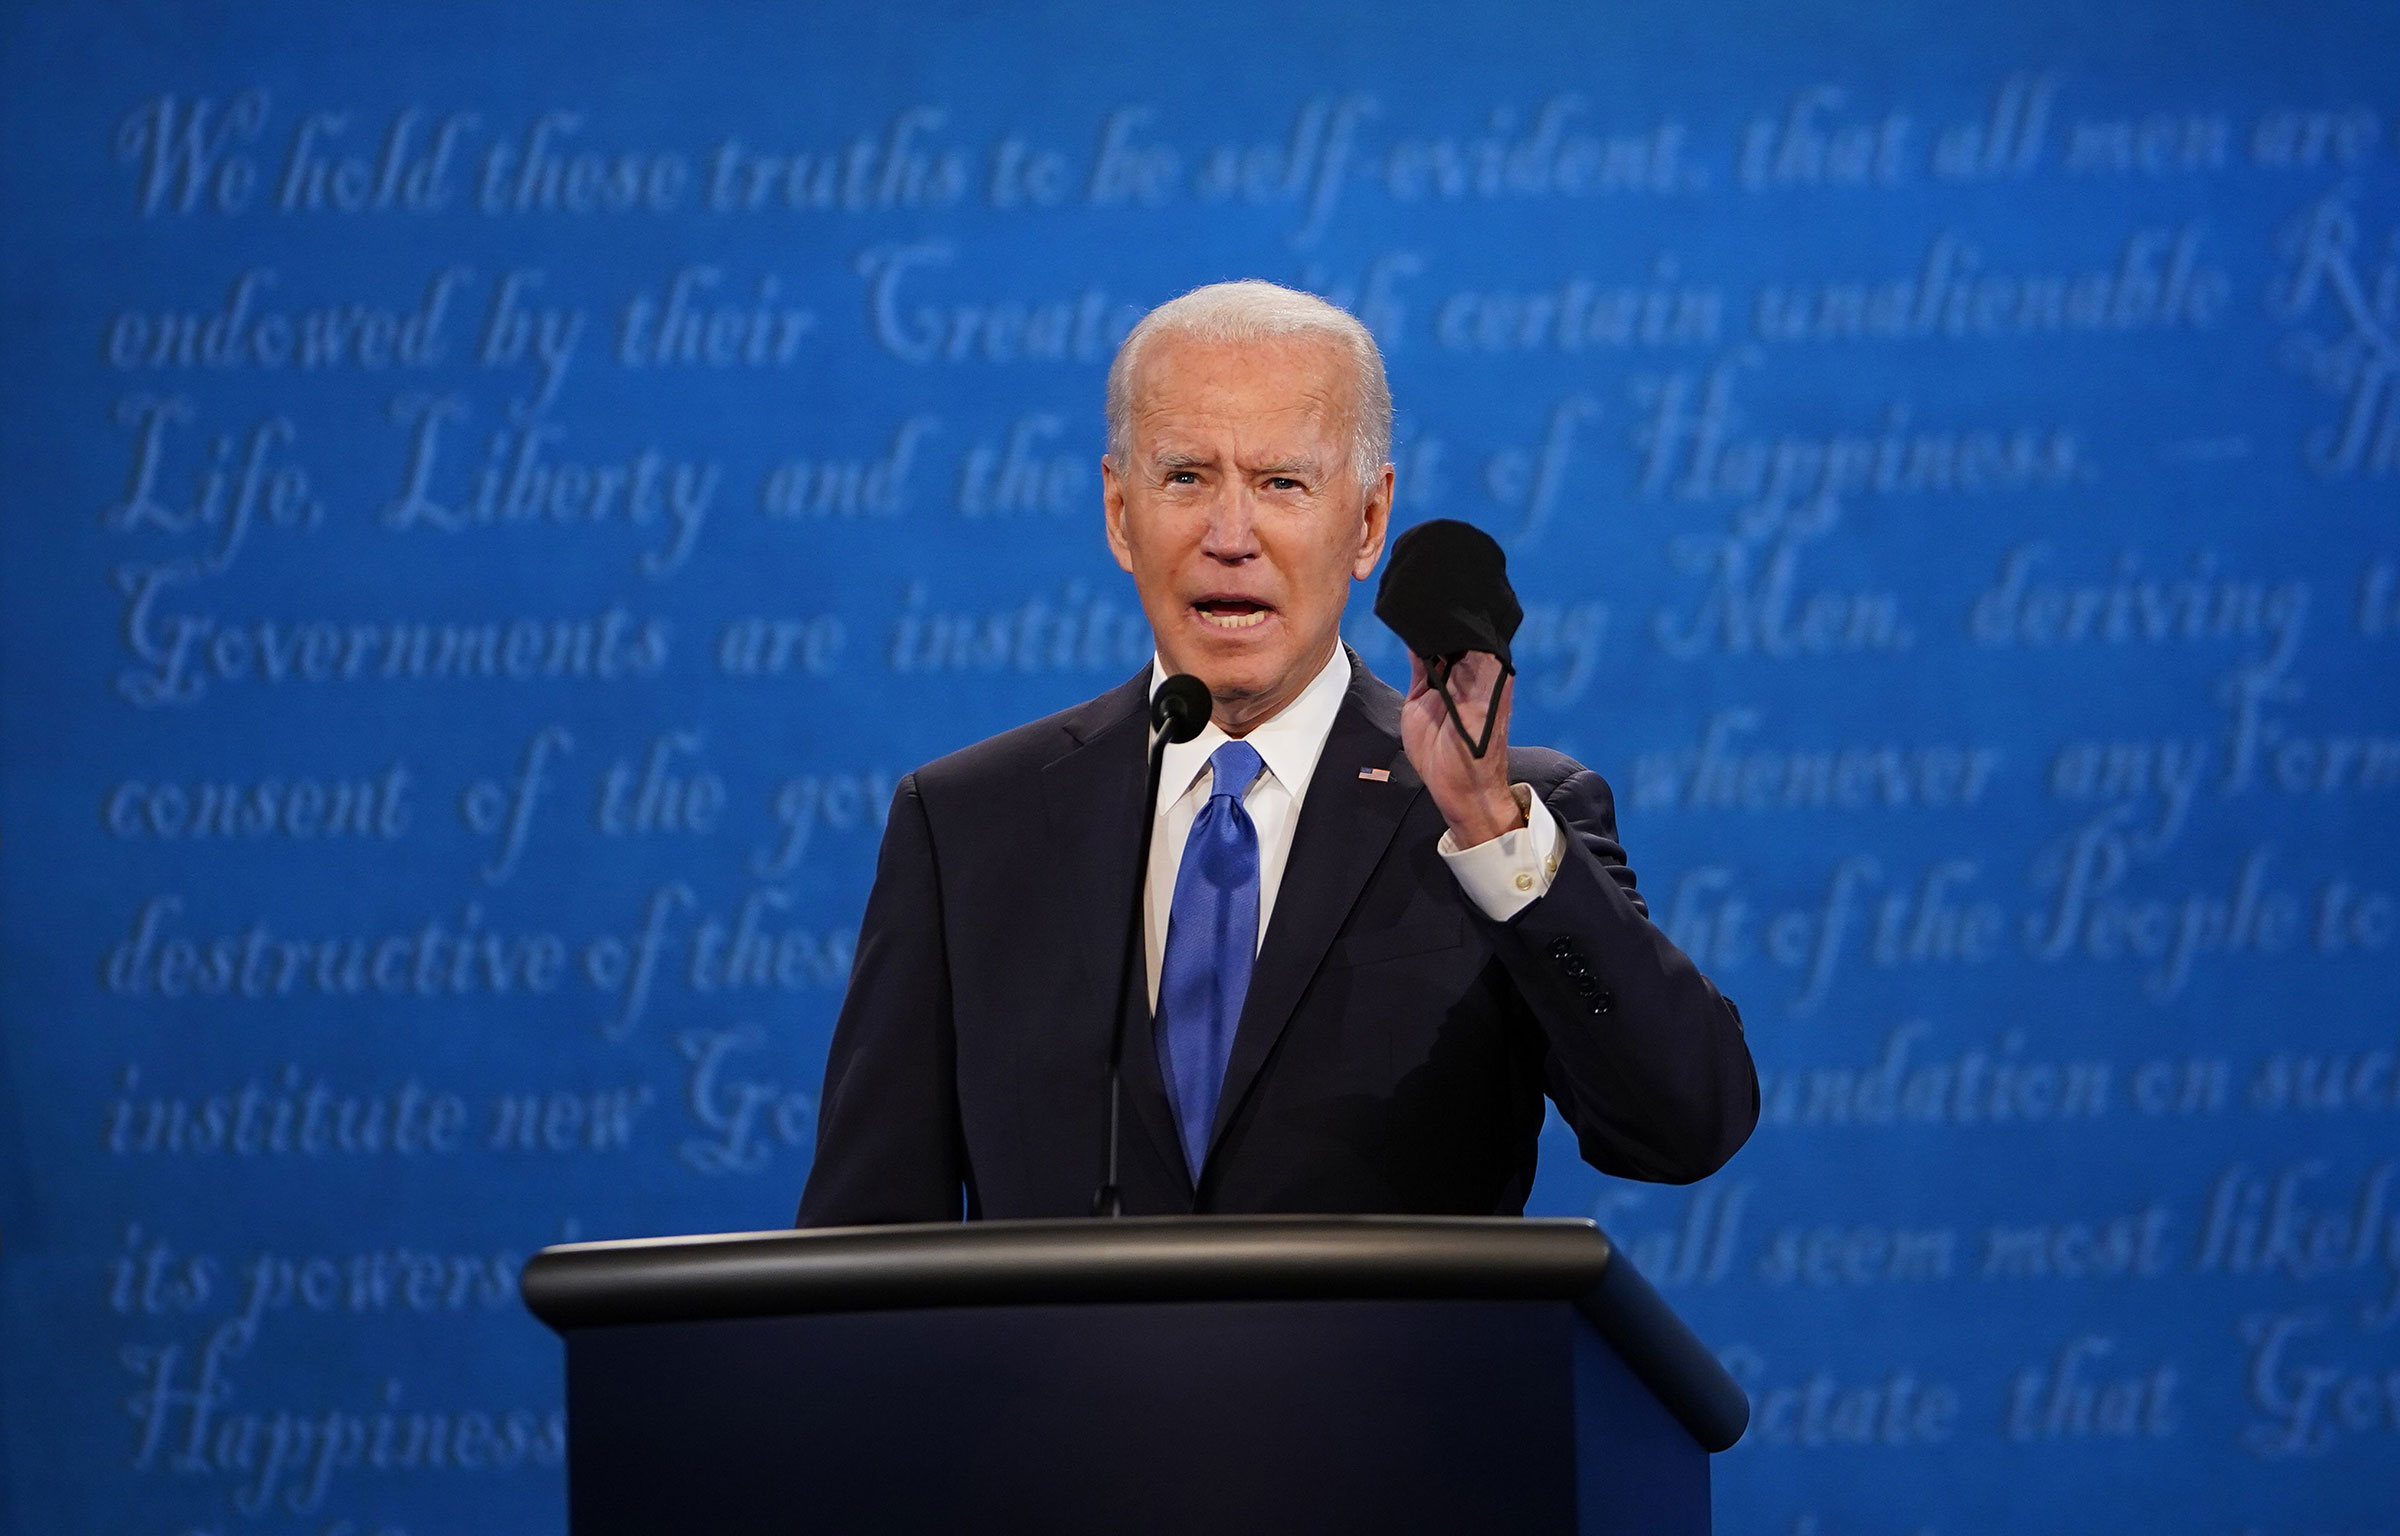 Joe Biden holds up a mask as he speaks during the final presidential debate at Belmont University in Nashville.